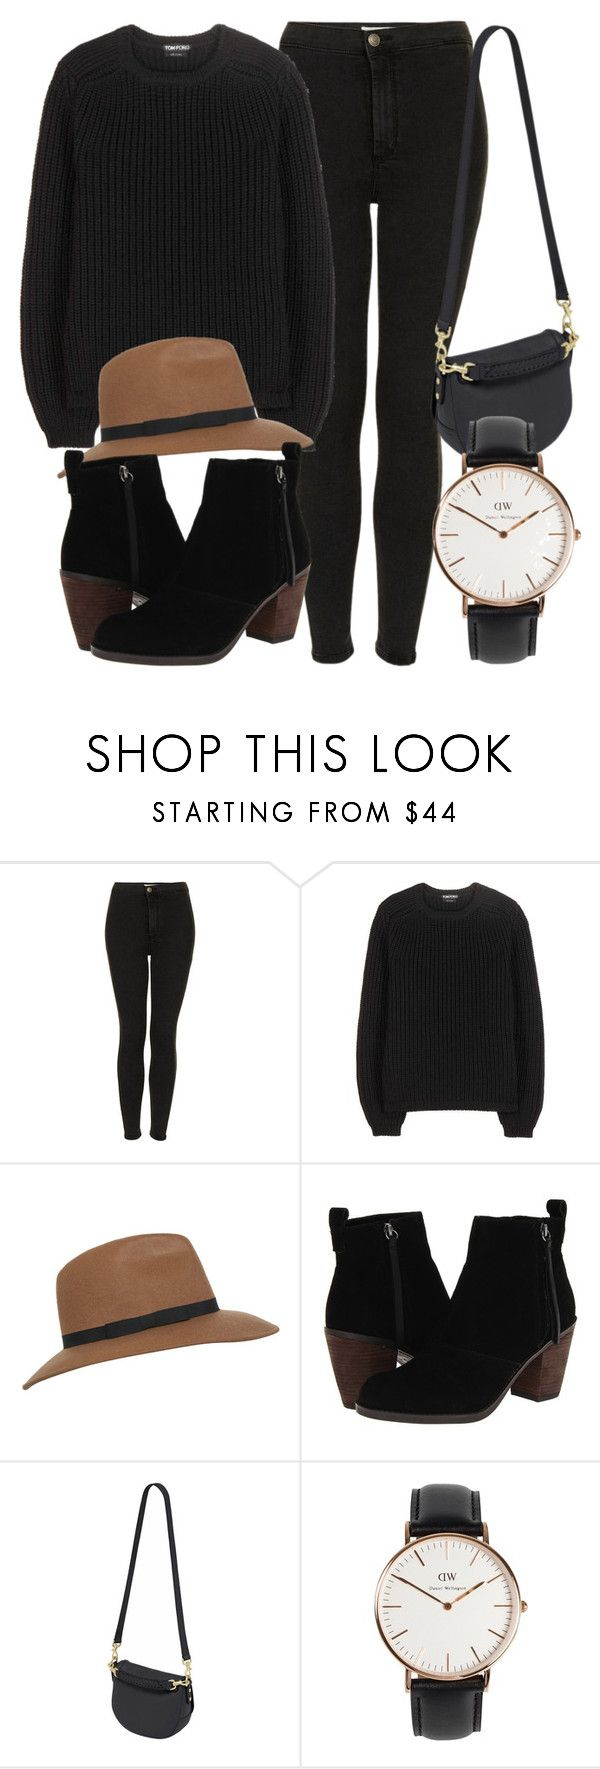 """""""Untitled #5364"""" by laurenmboot ❤ liked on Polyvore featuring Topshop, Tom Ford, Miss Selfridge, Dolce Vita, Mulberry and Daniel Wellington"""